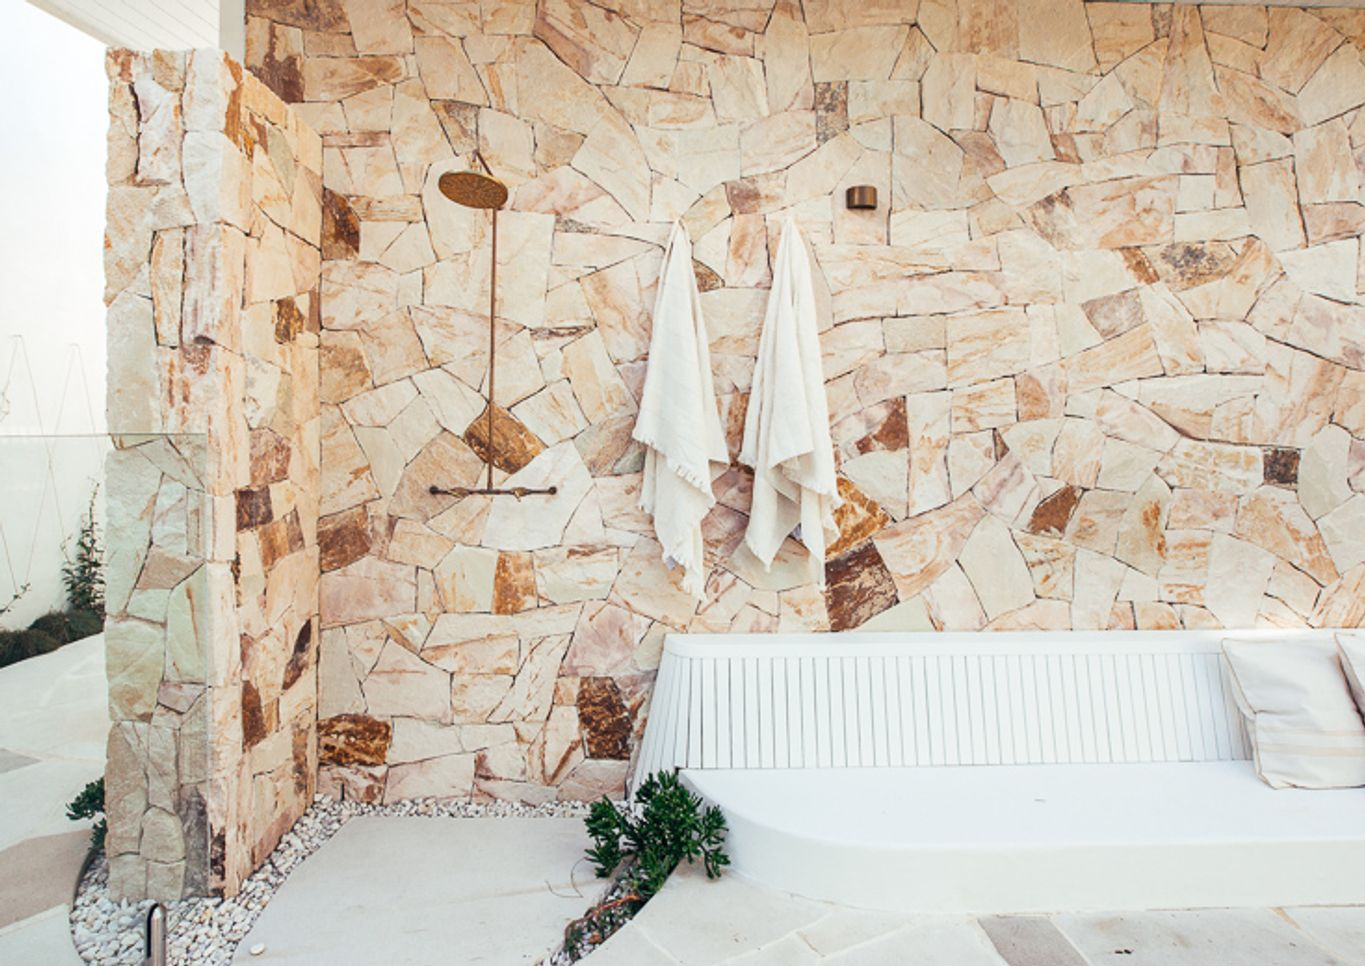 Brass outdoor shower with stone cladding Strathmore